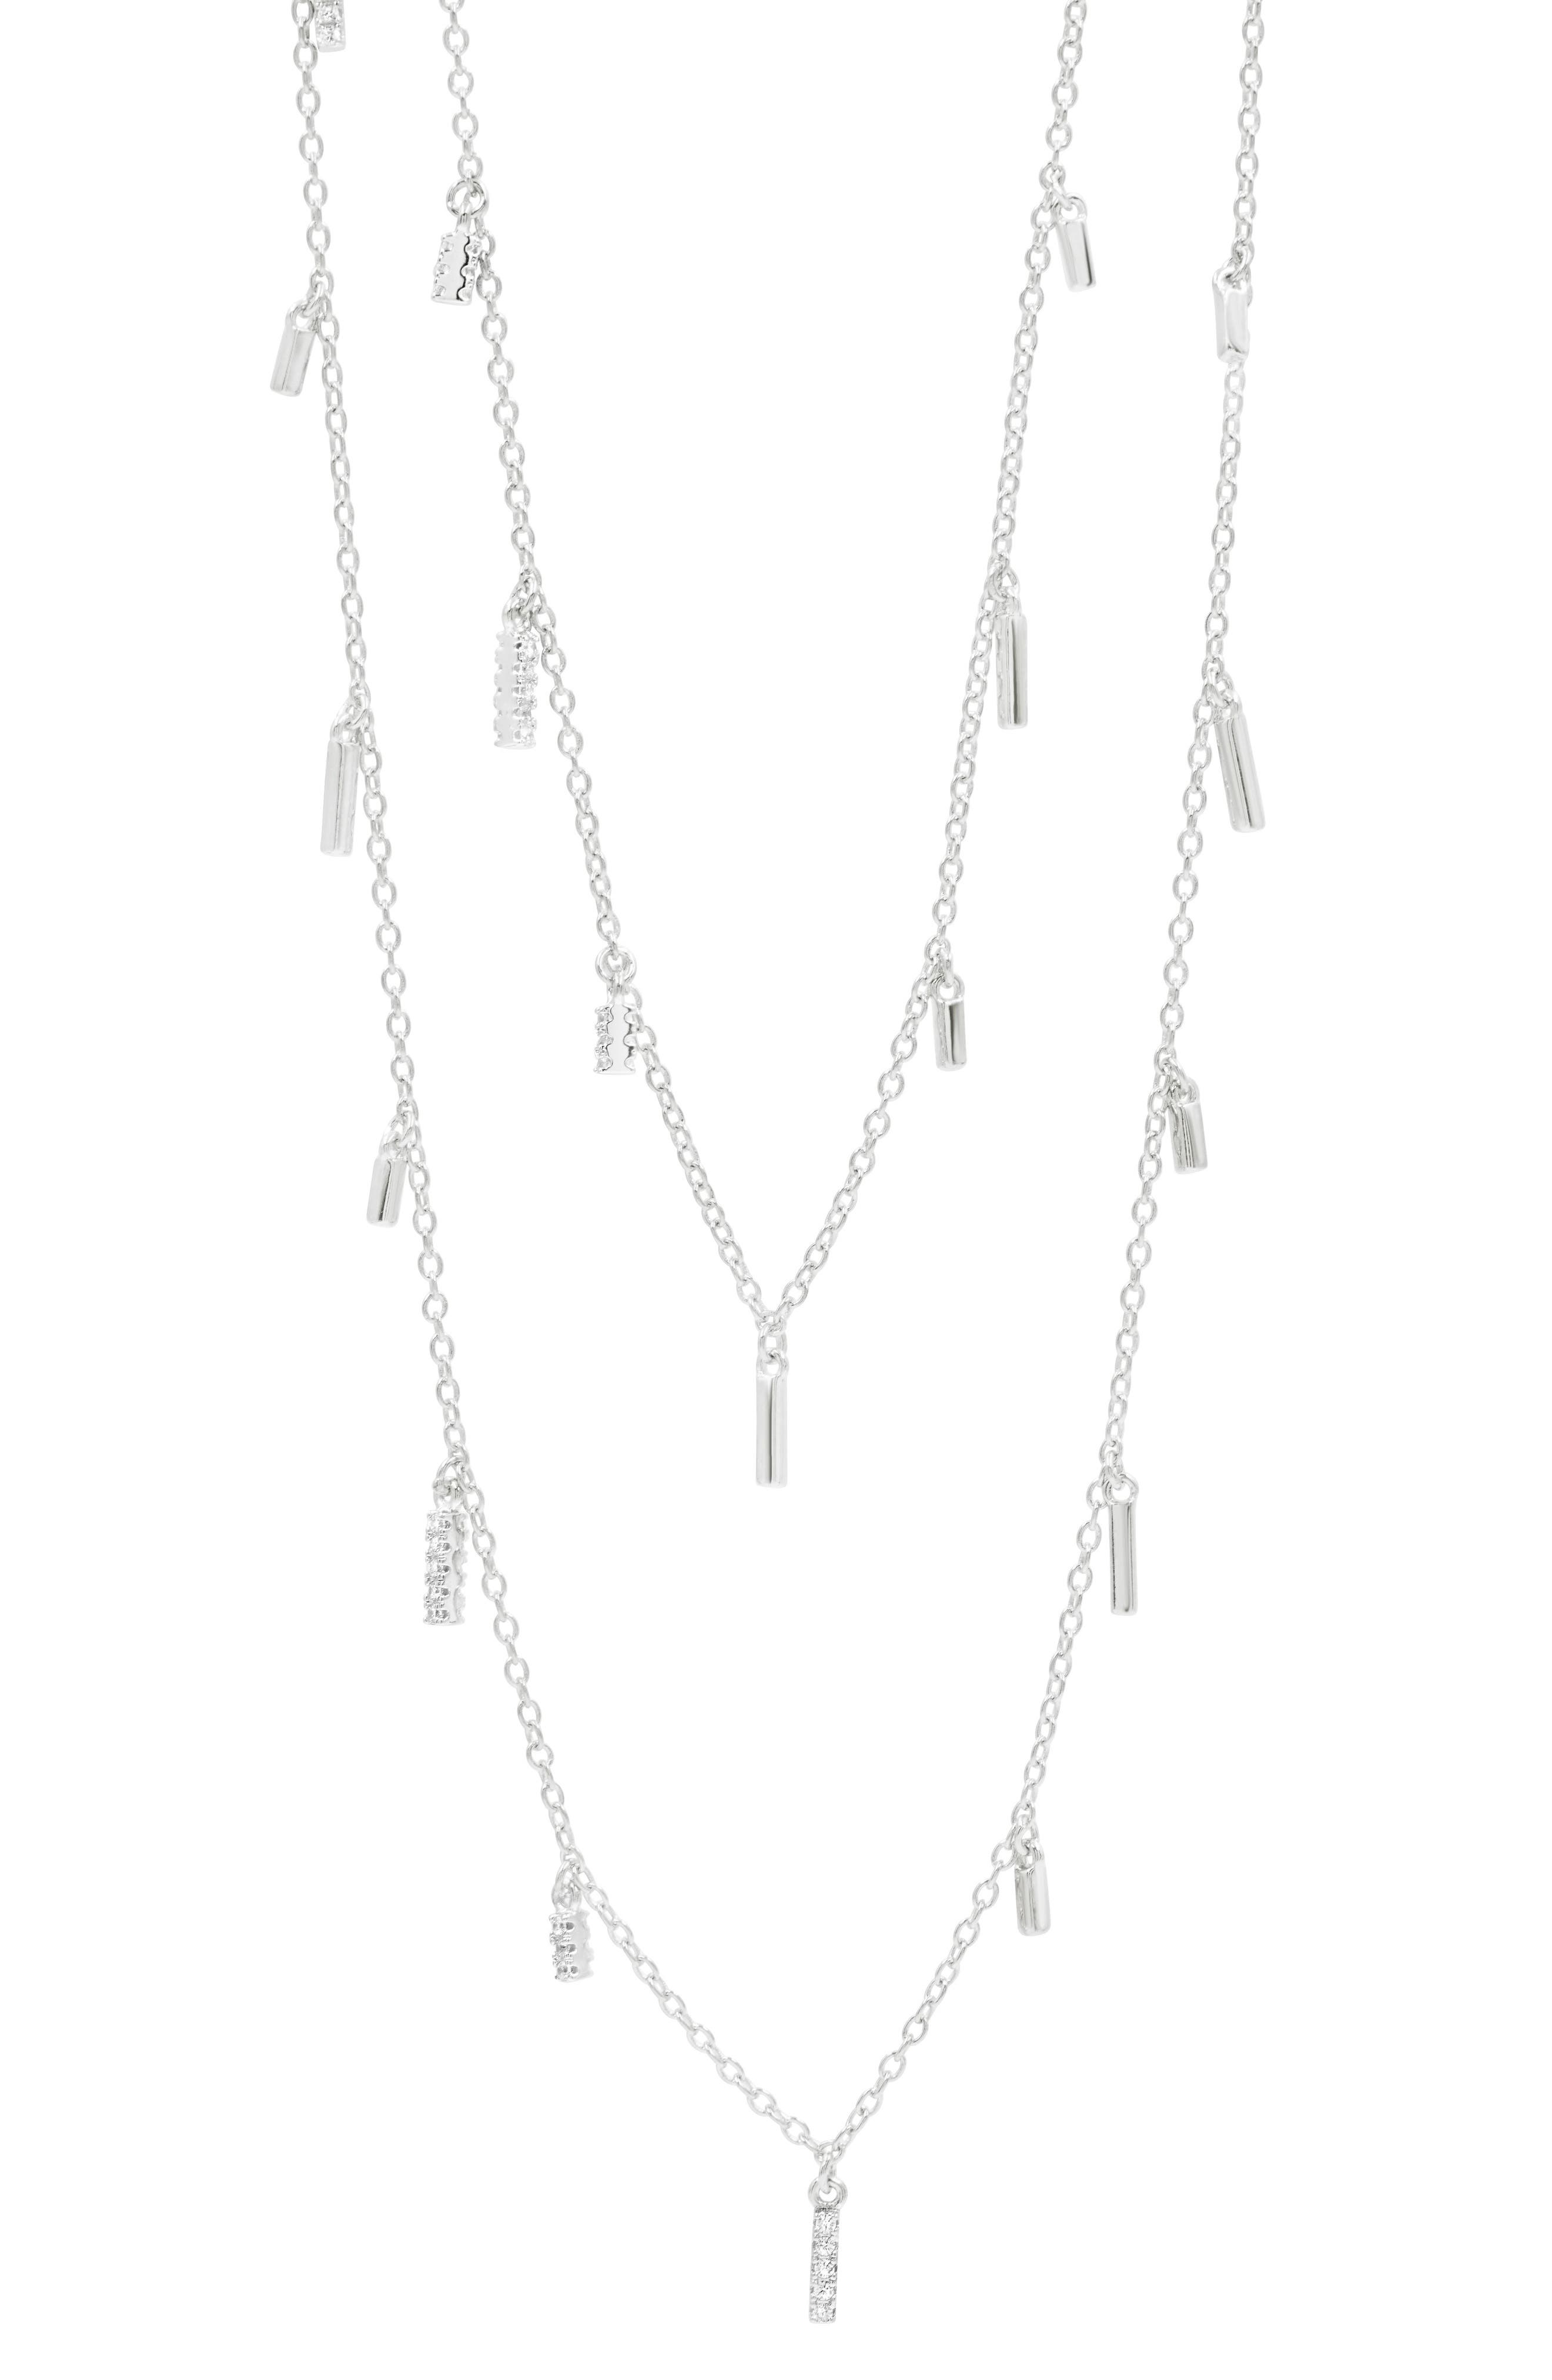 Radiance Multistrand Necklace,                         Main,                         color, Silver